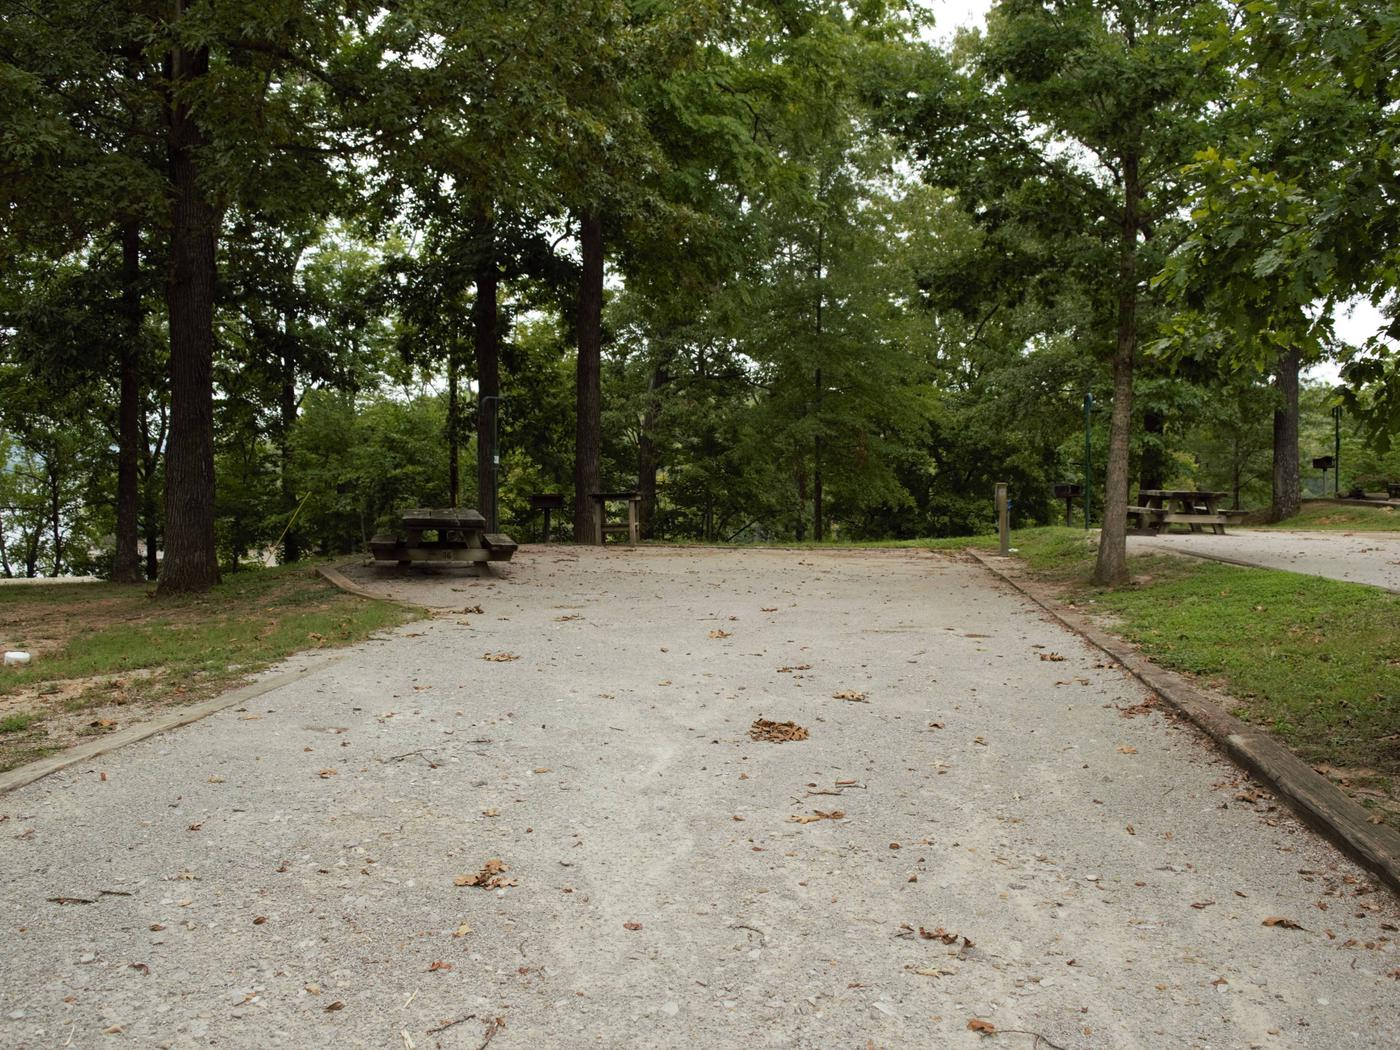 WILLOW GROVE CAMPGROUND SITE #40